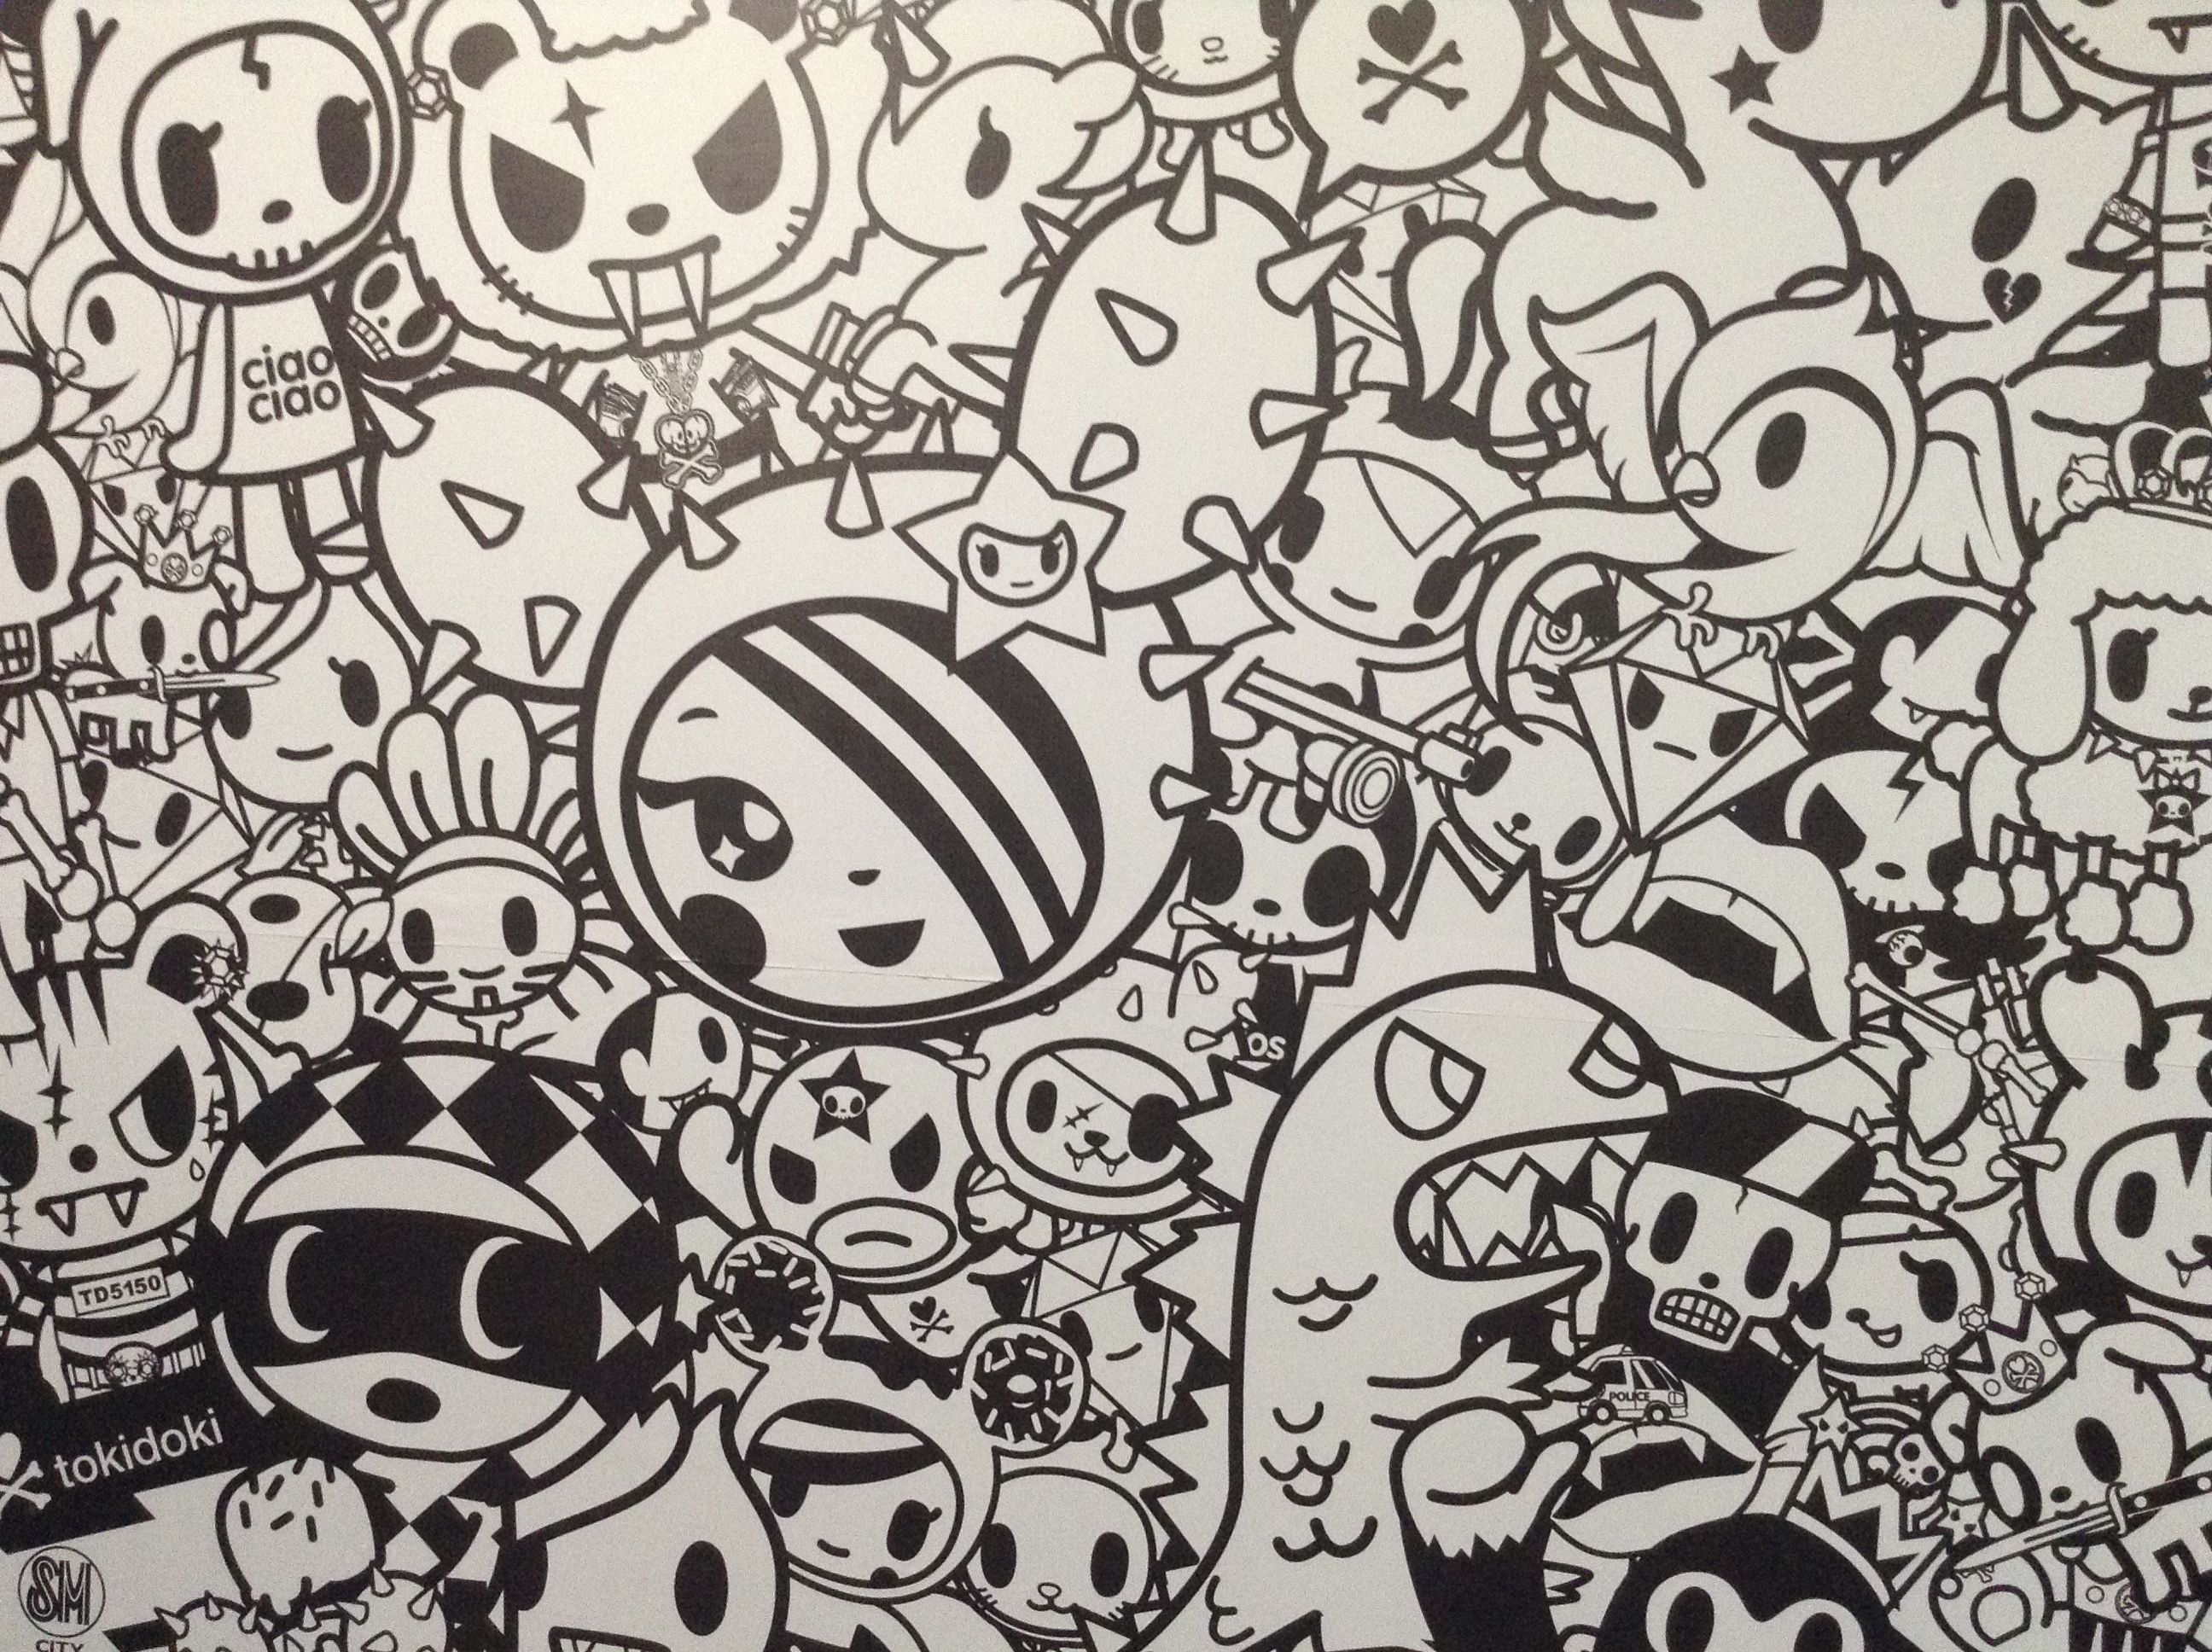 Tokidoki Coloring Pages Tokidokilovesyou  Tokidoki Loves You  Pinterest